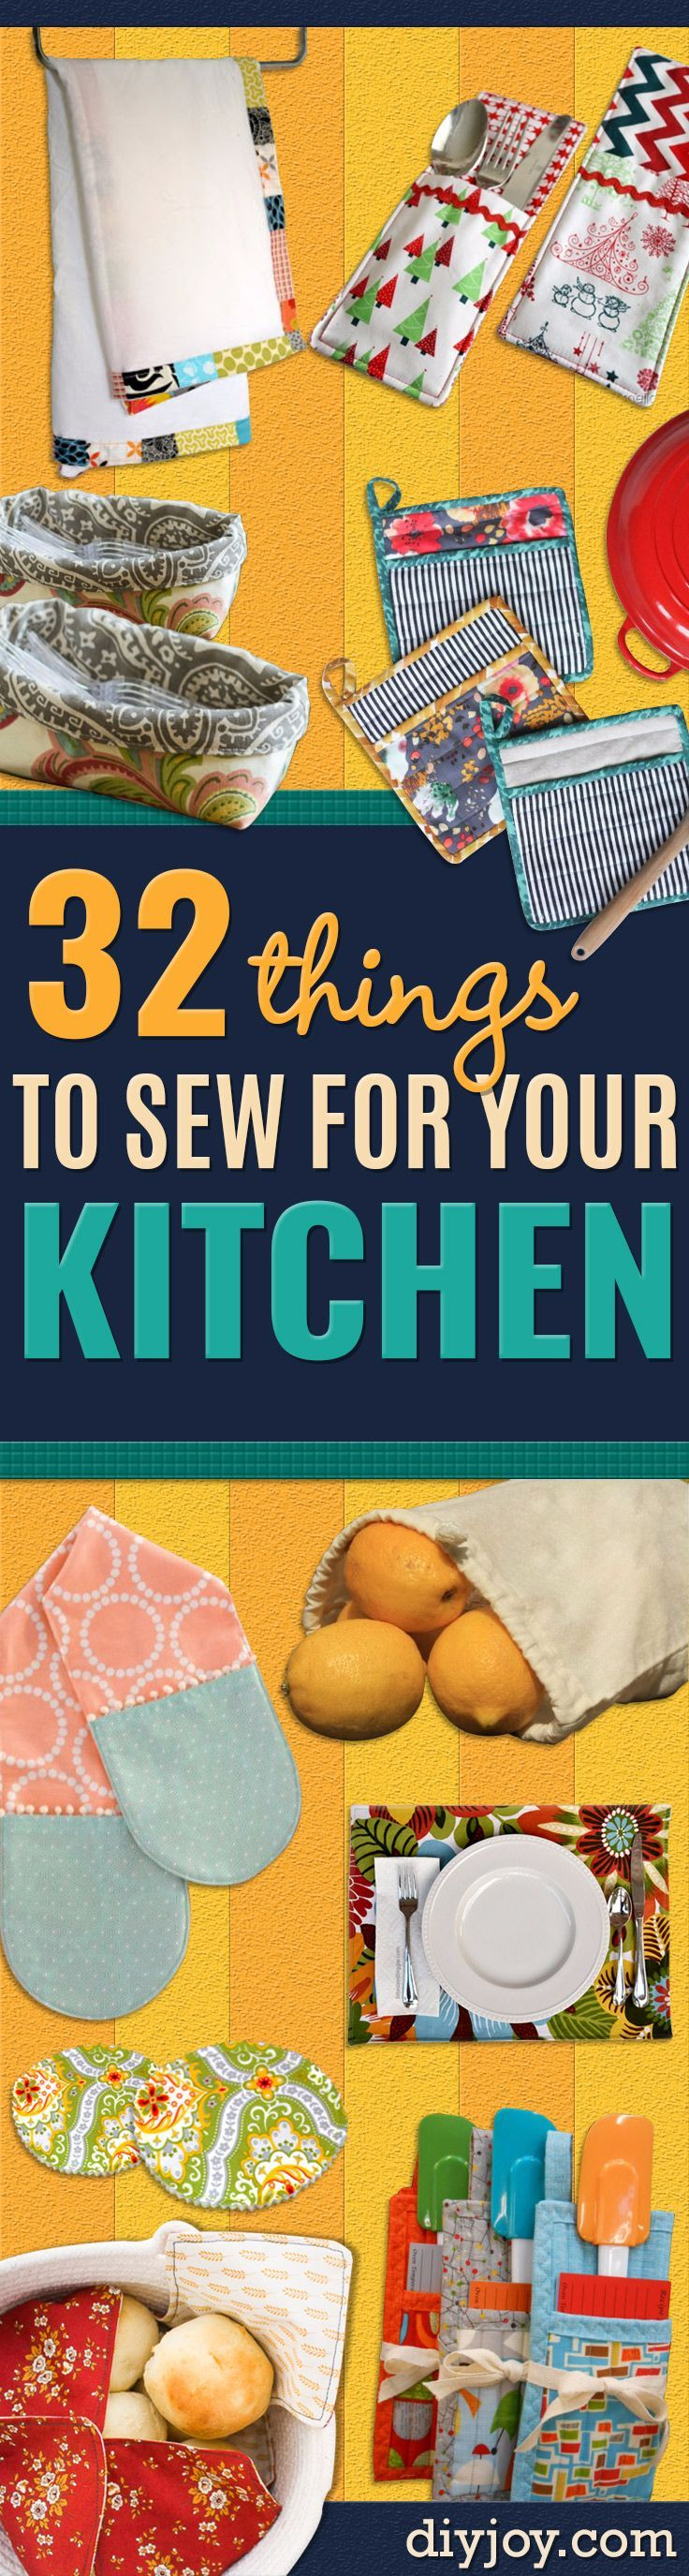 Best 25 Kitchen craft ideas on Pinterest